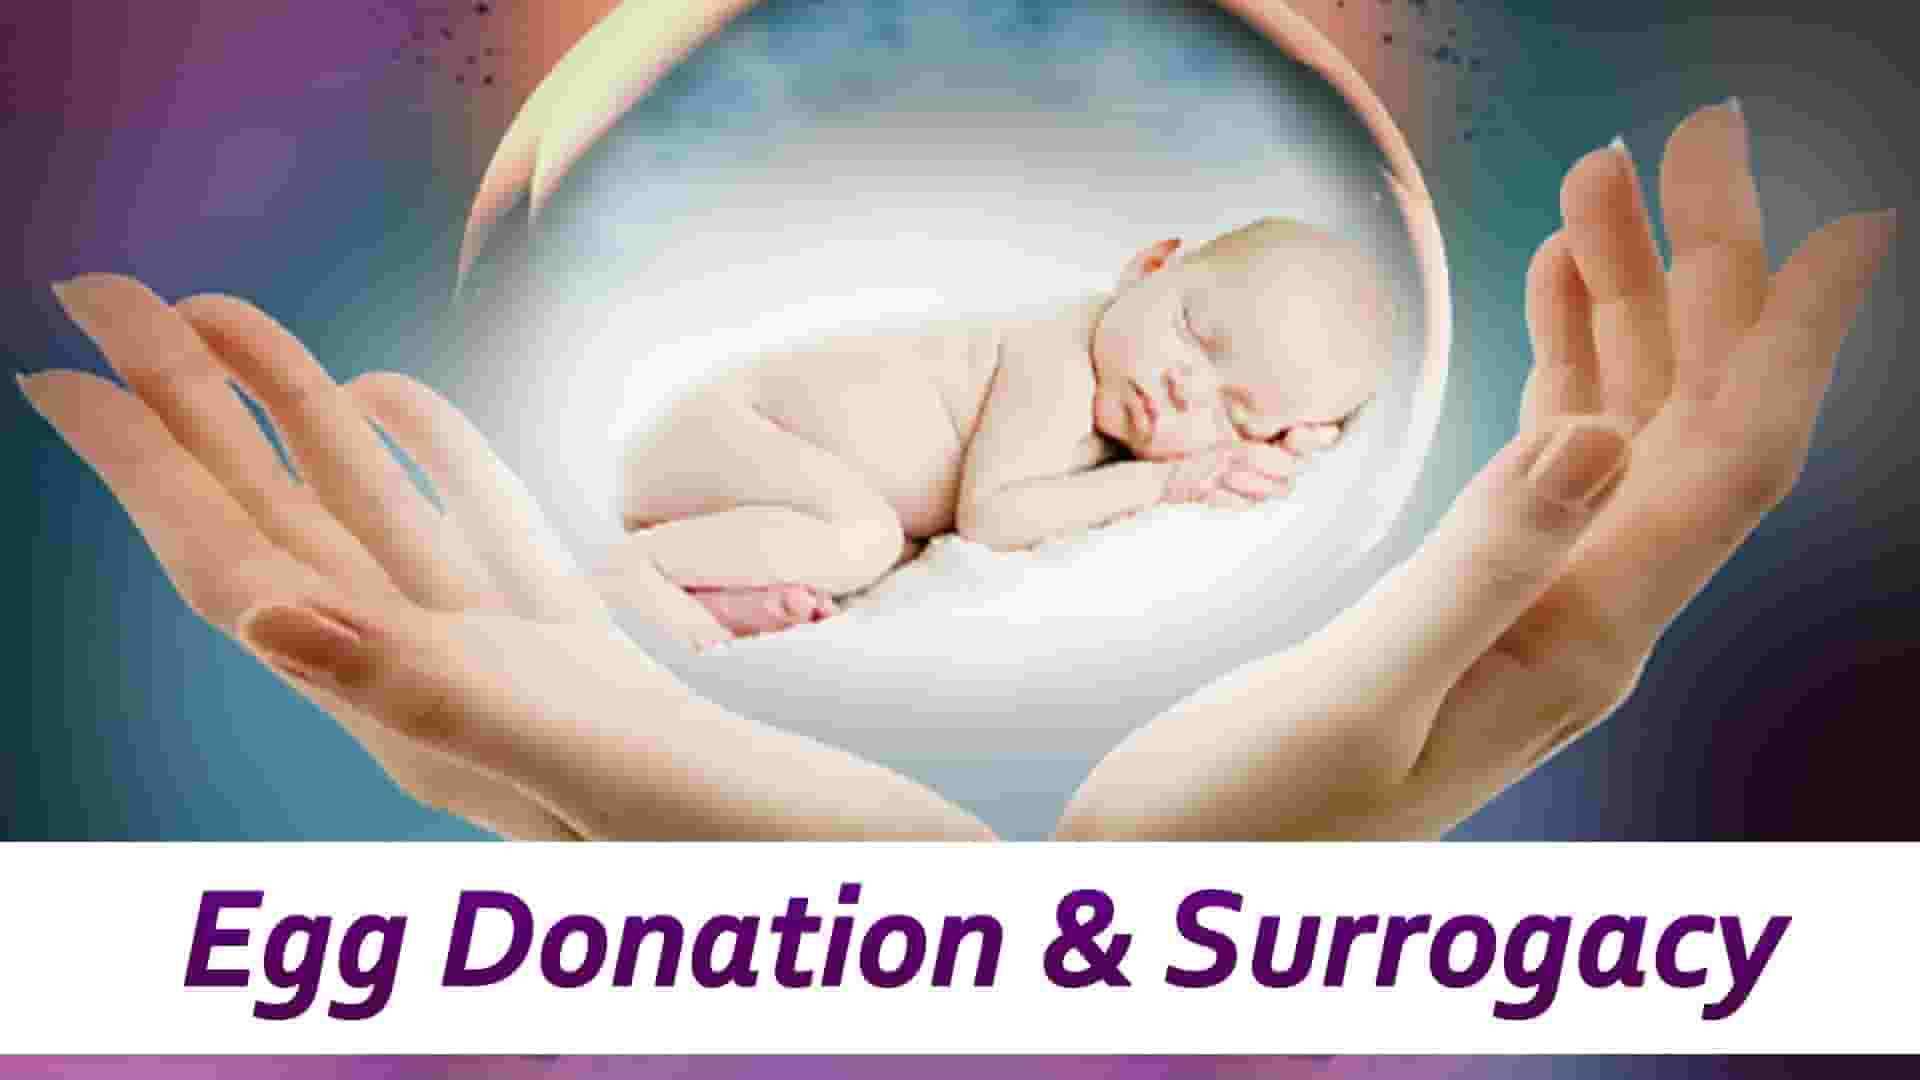 What is surrogacy?